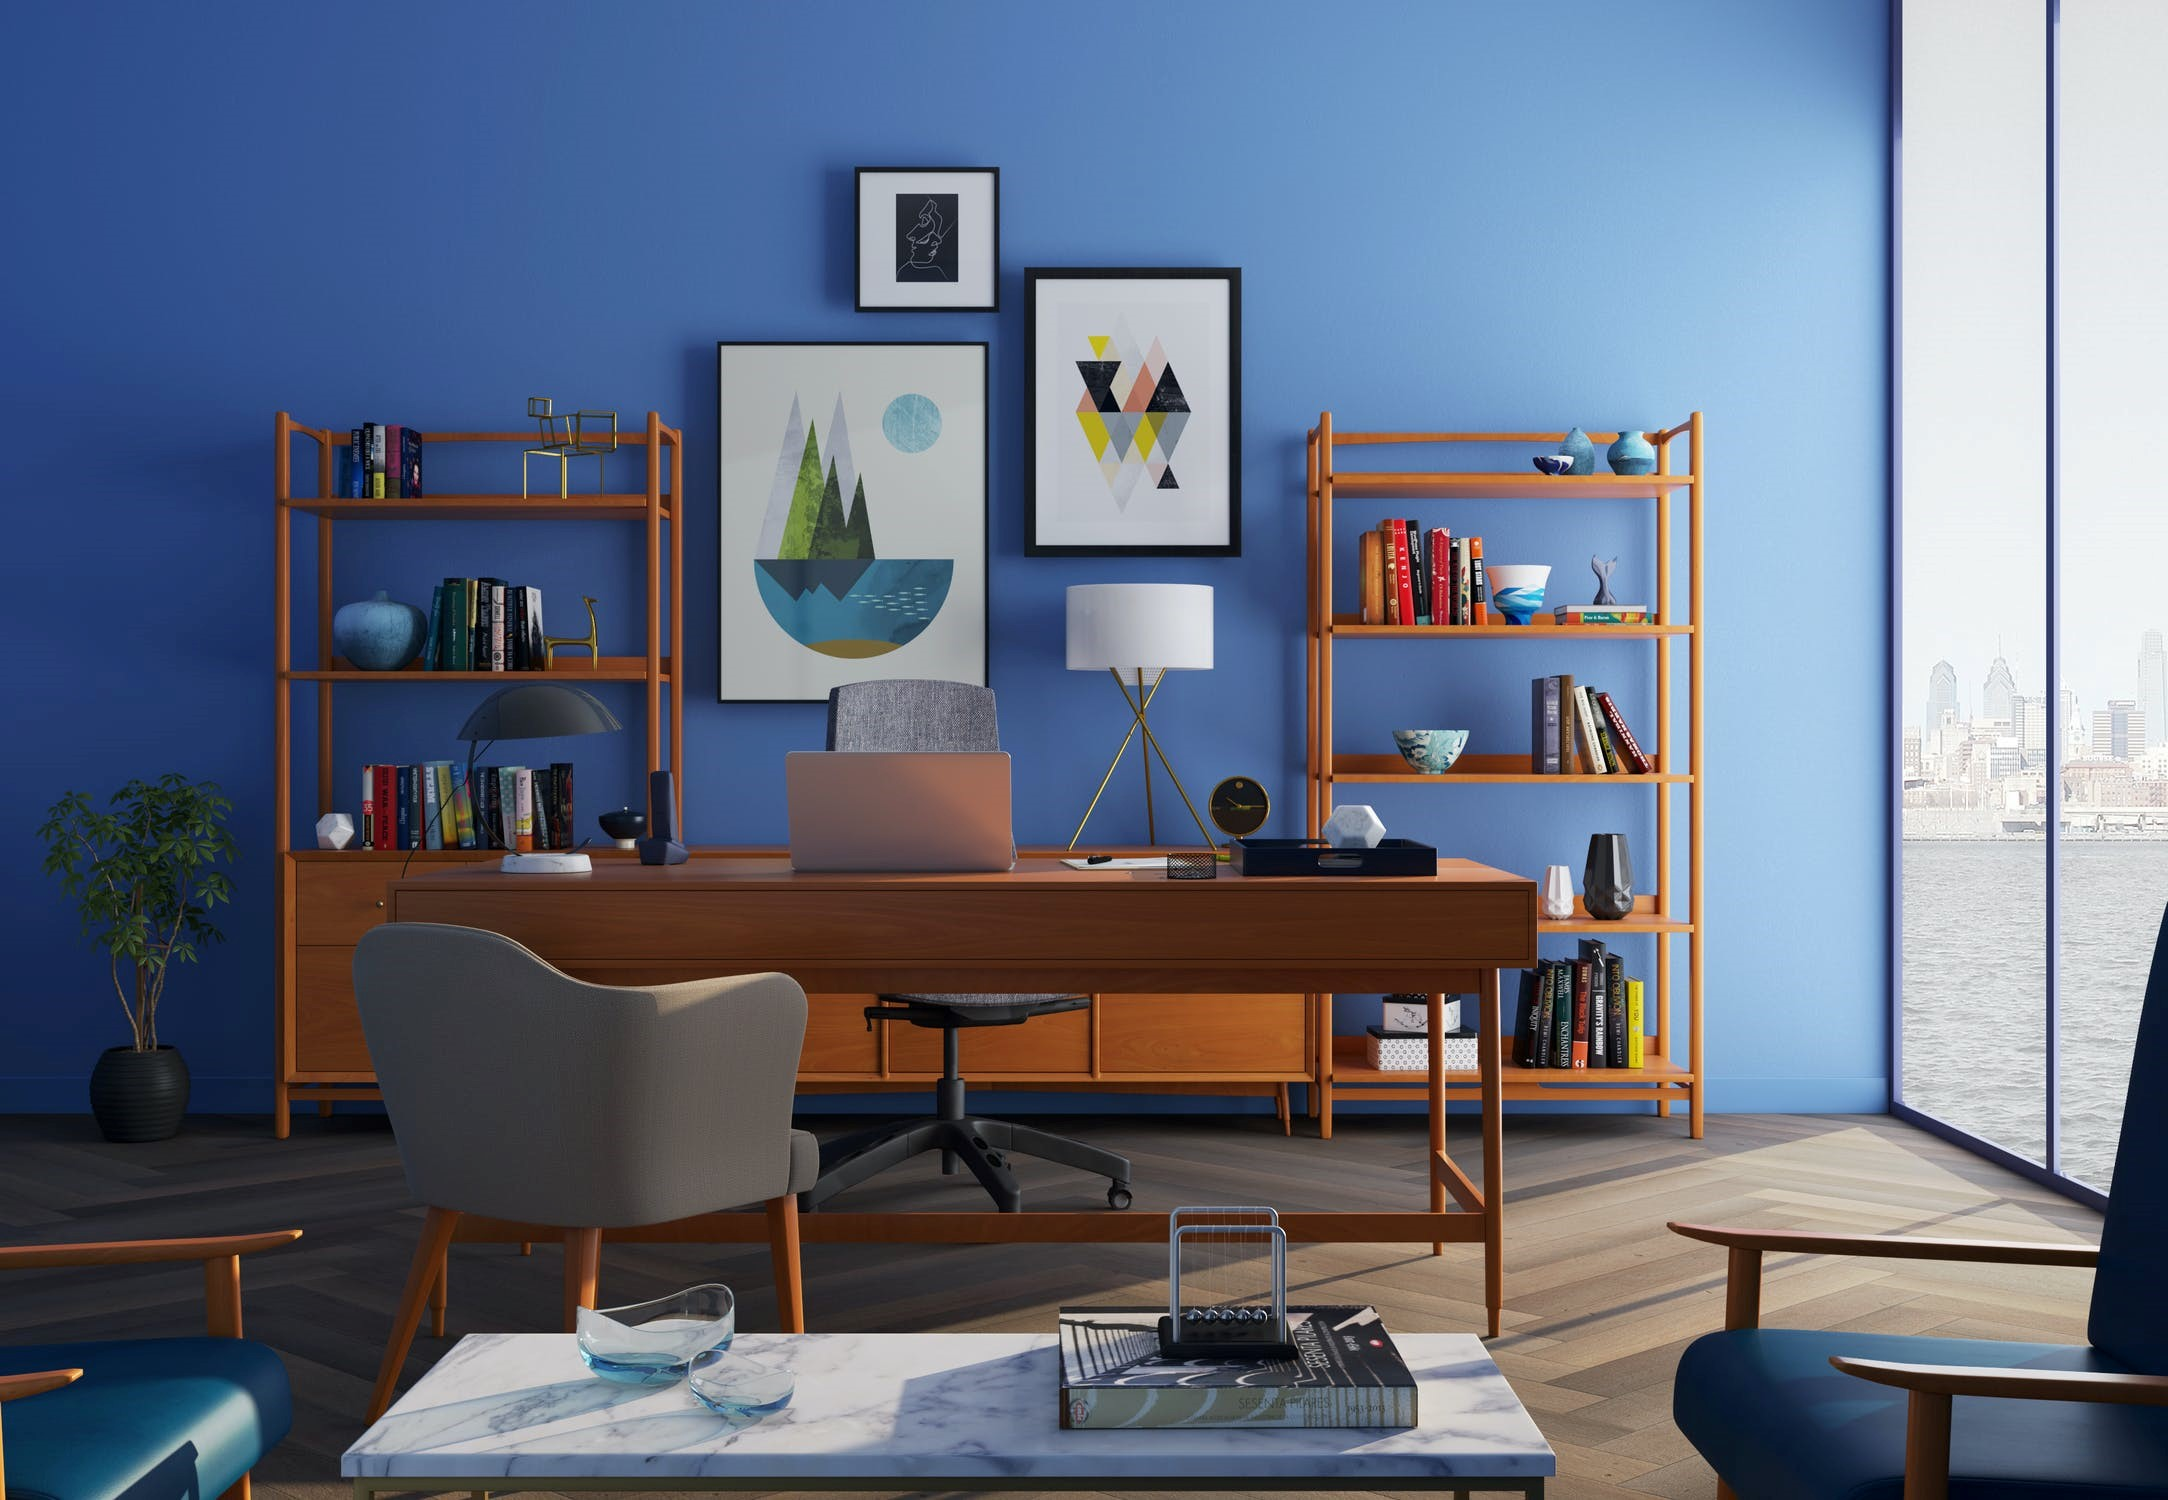 10 Budget-Friendly Options for Styling Your Rental Property | Decorate the Walls with Artwork